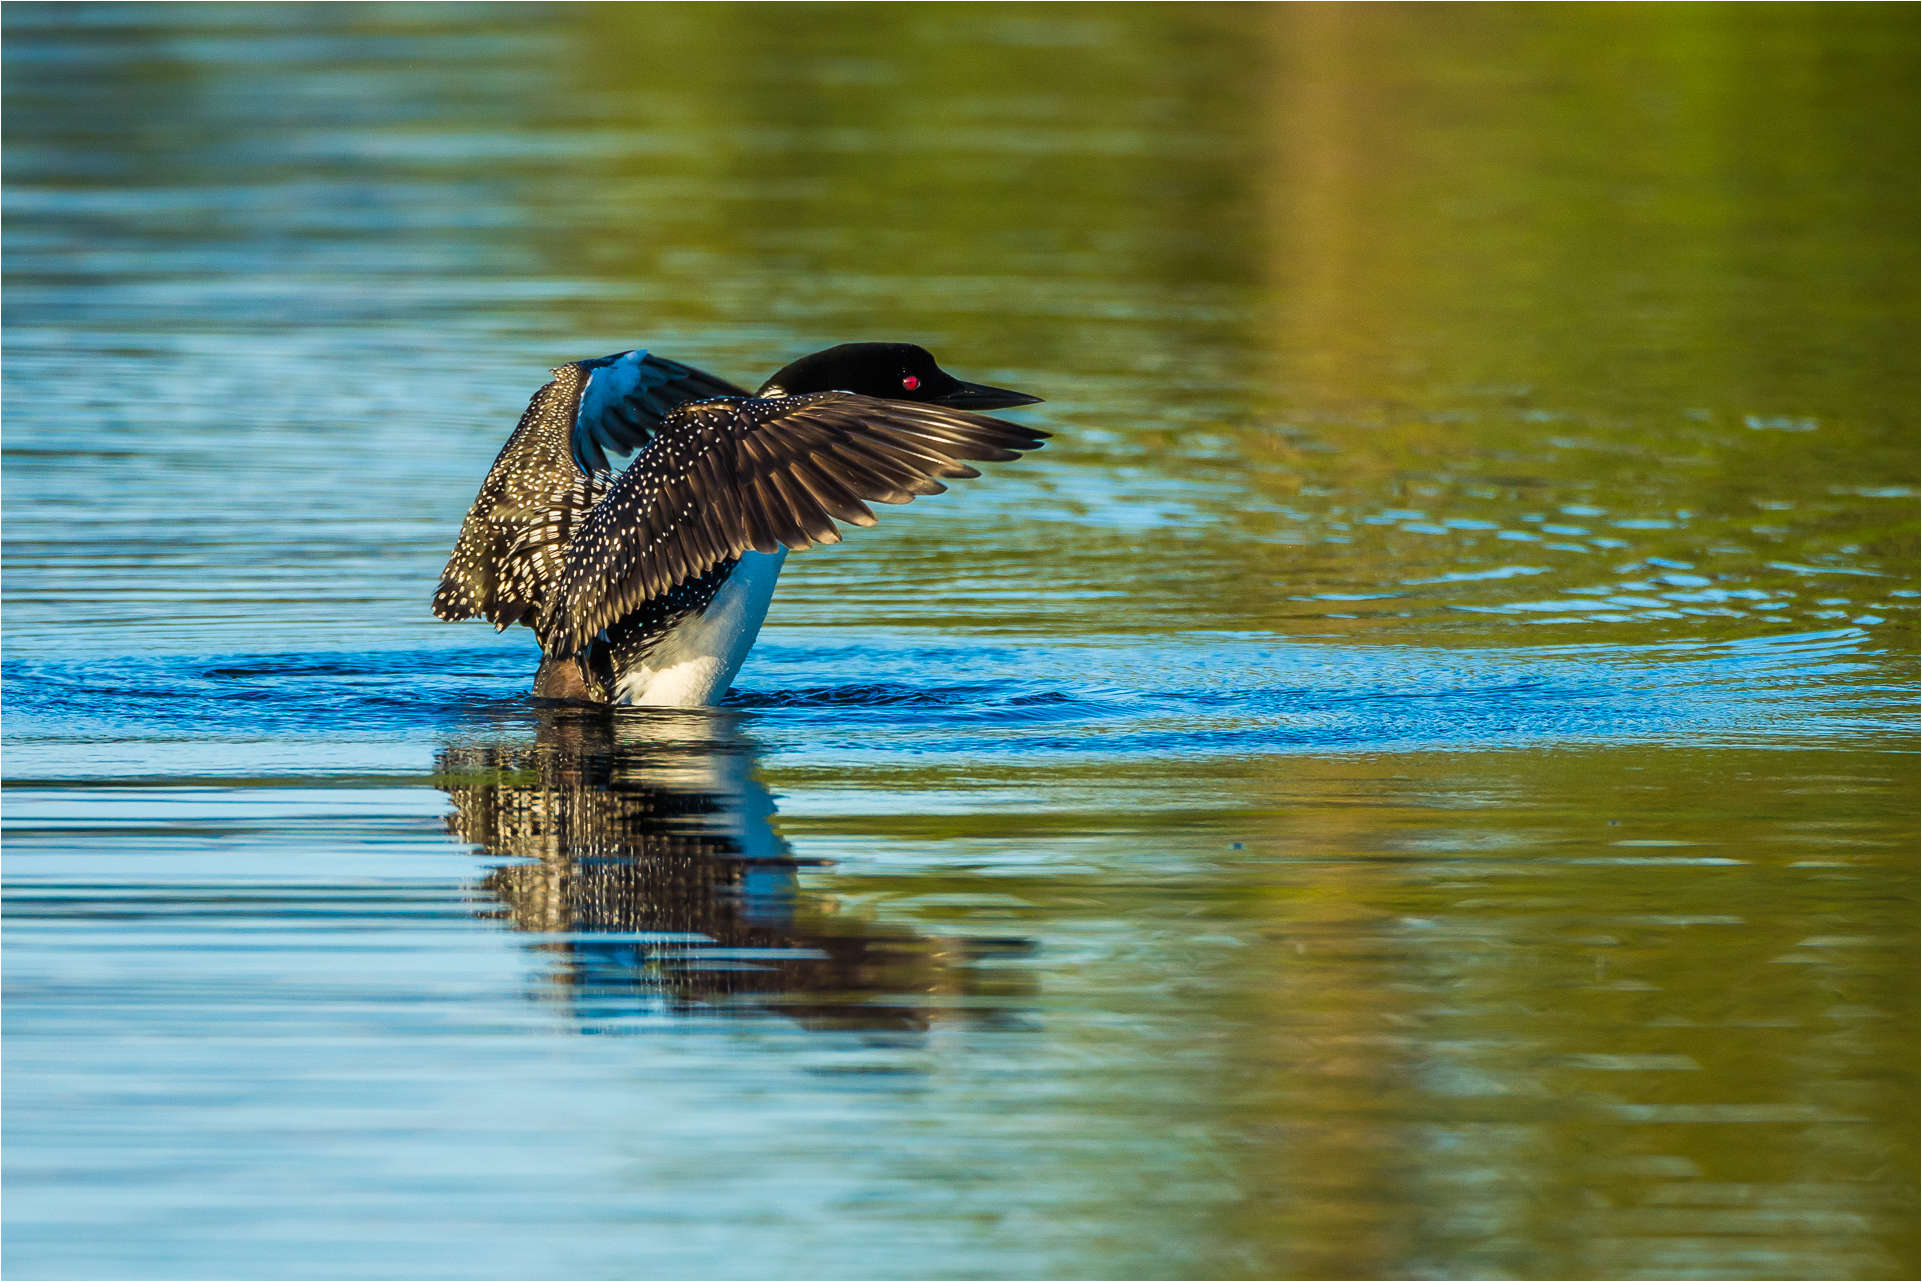 Water off a loon's back - © Christopher Martin-2213